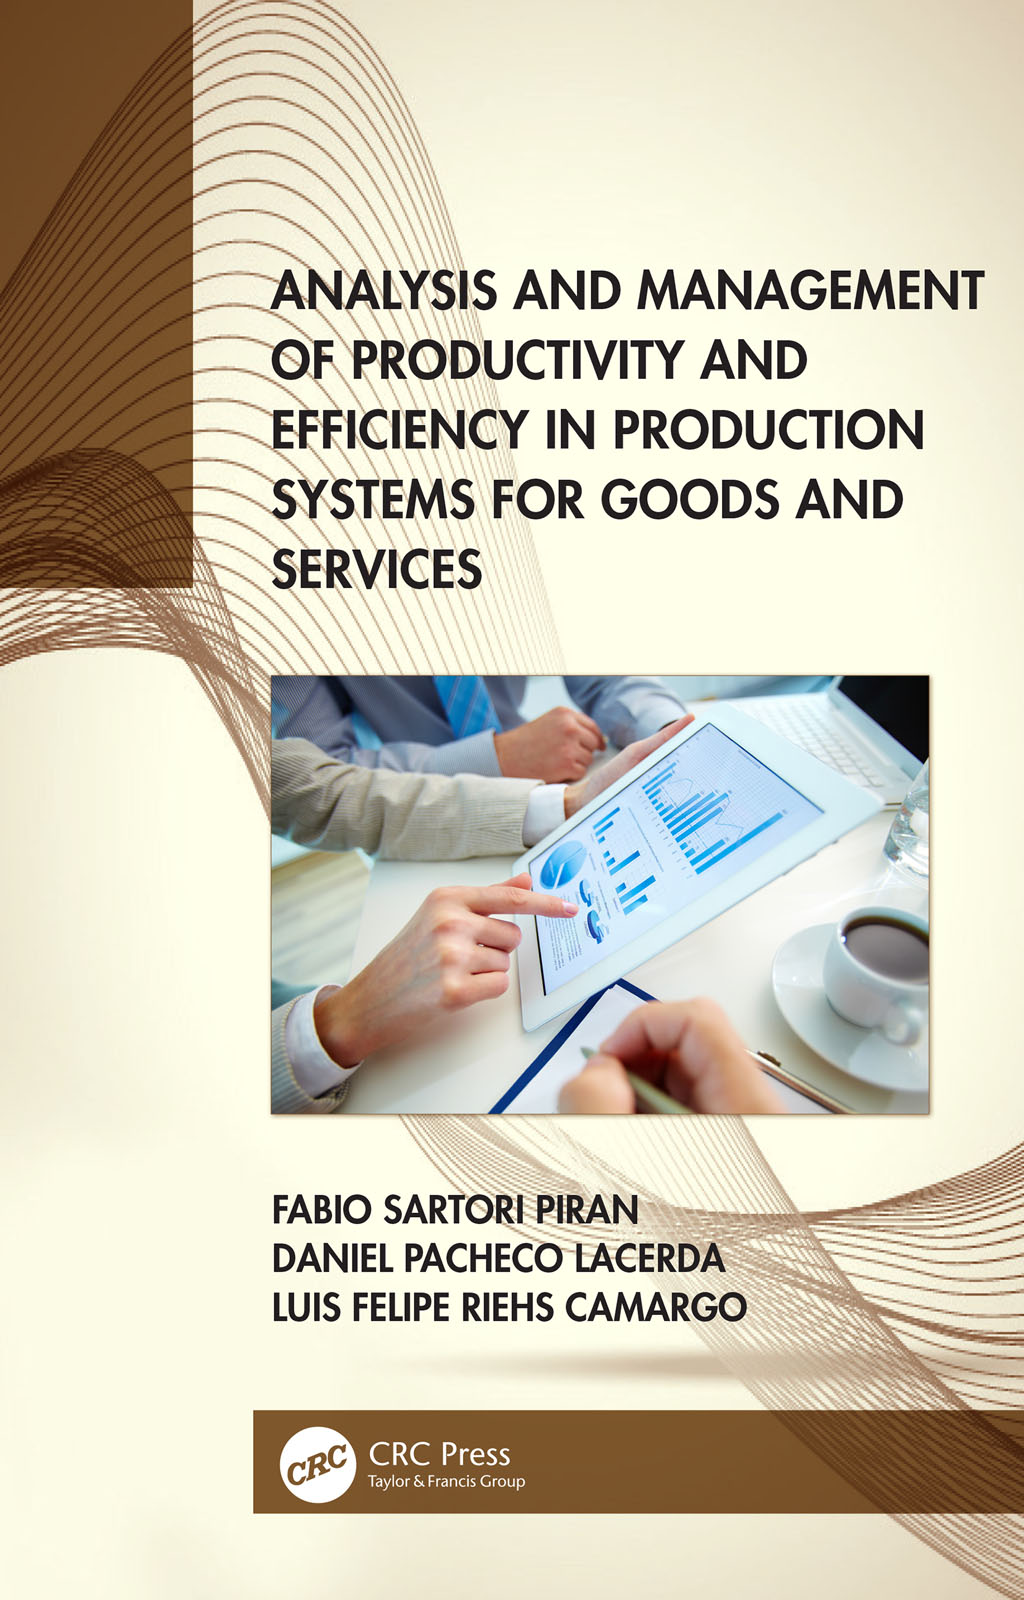 Analysis and Management of Productivity and Efficiency in Production Systems for Goods and Services book cover